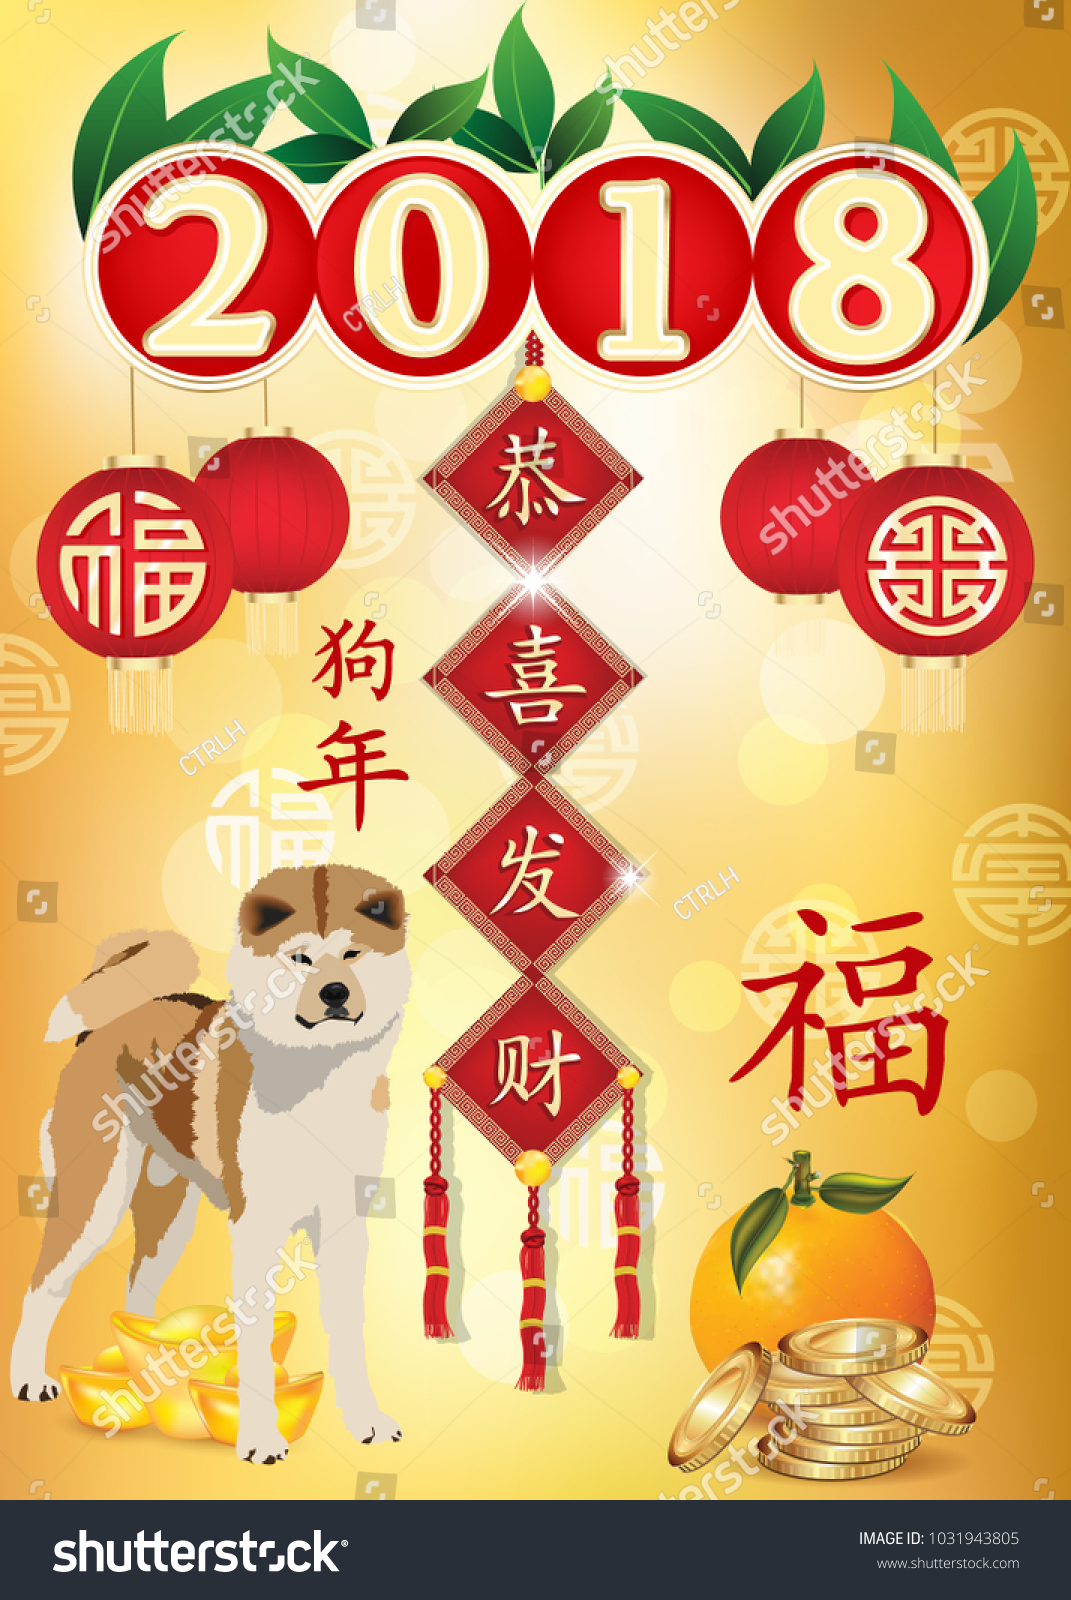 Chinese new year greeting words in english images greetings card happy chinese new year 2018 greeting card with text in chinese and m4hsunfo